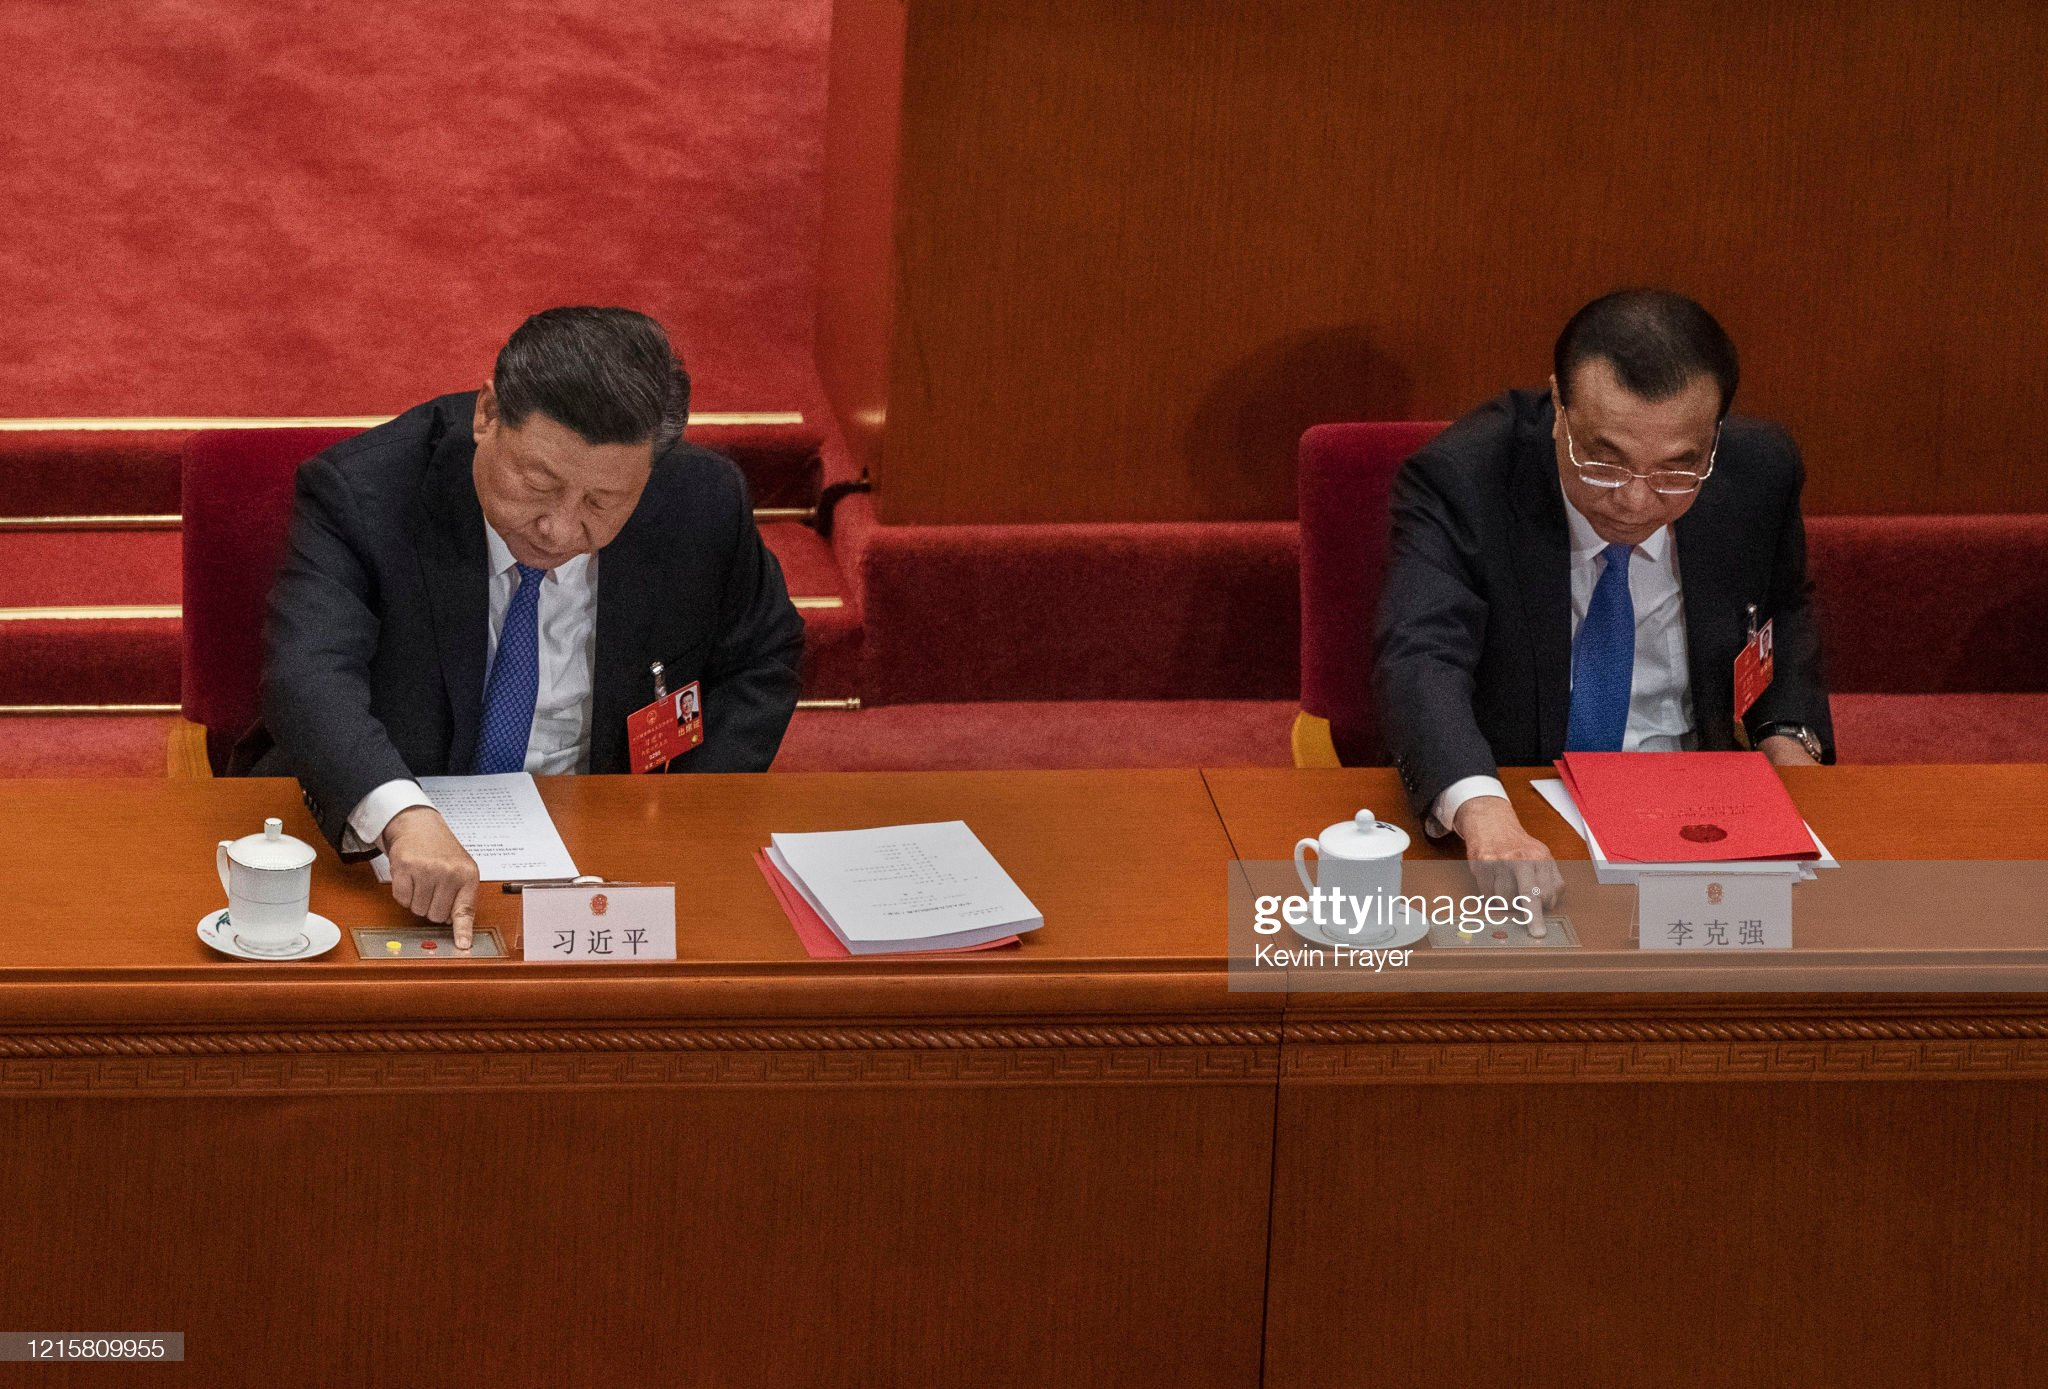 China Holds Annual Two Sessions Meetings Amidst Global Coronavirus Pandemic : News Photo